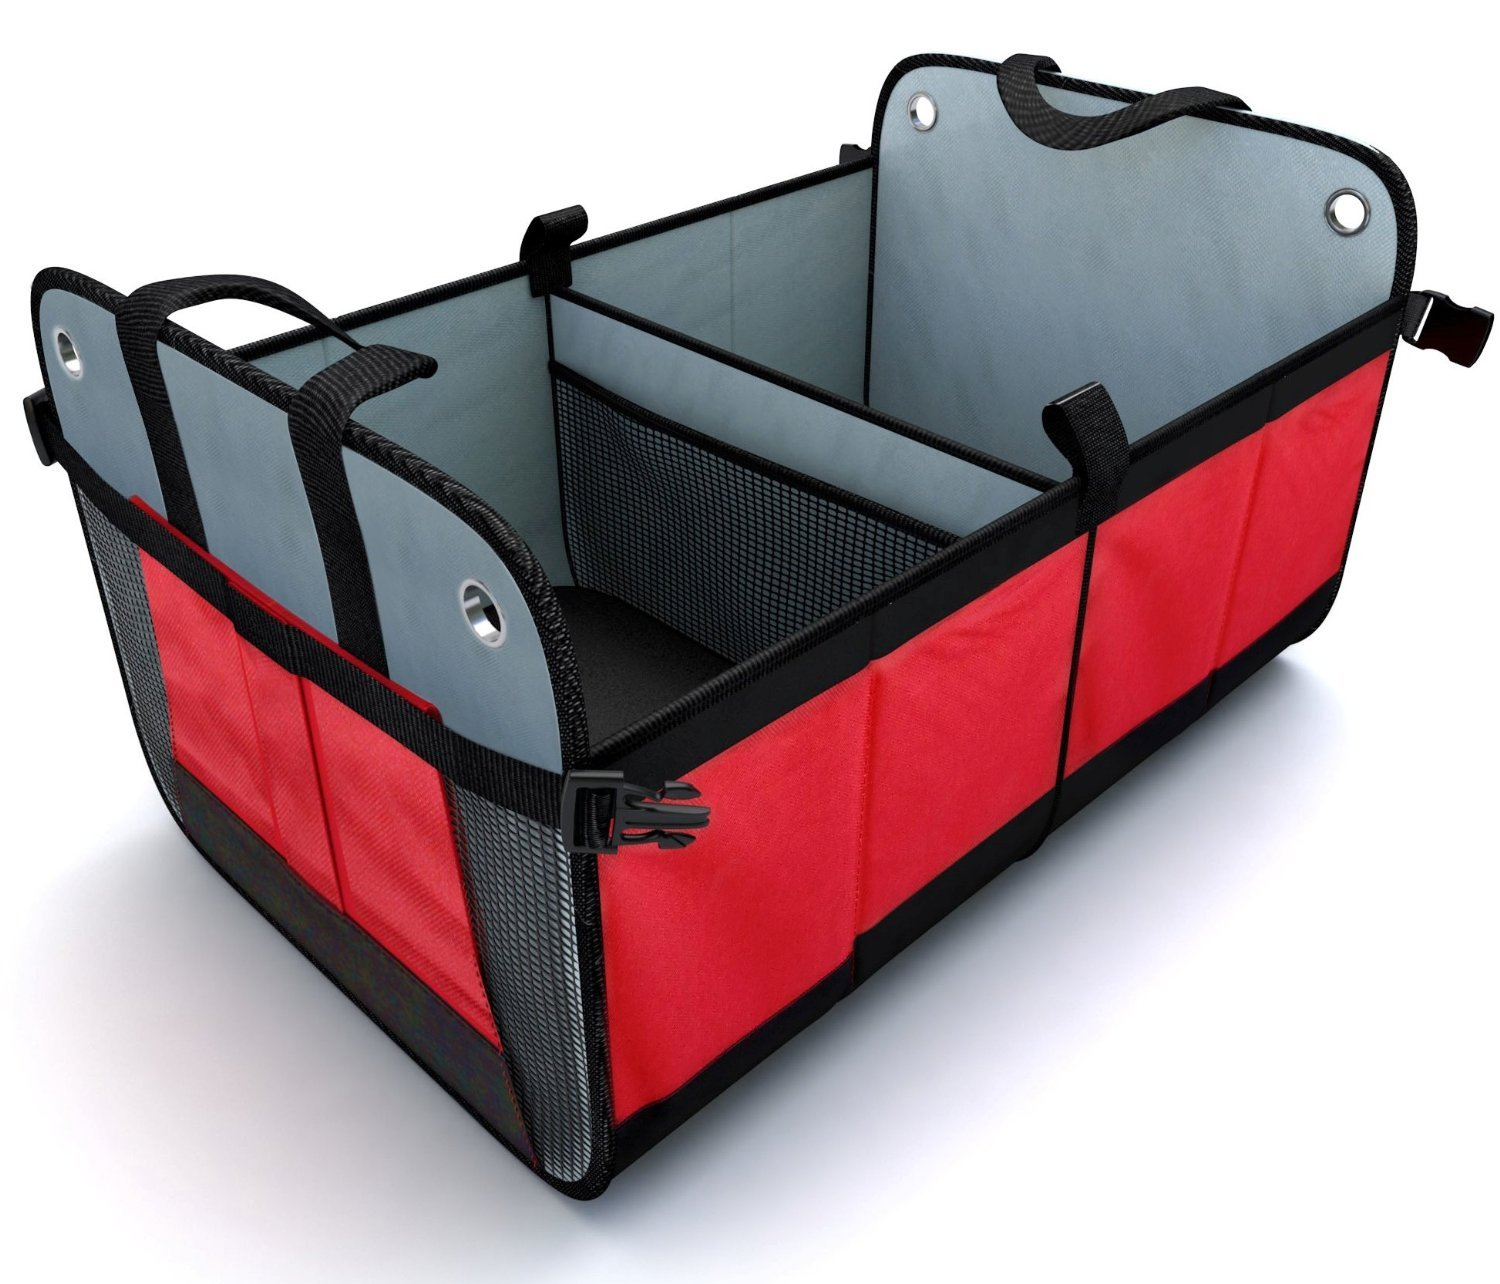 Large Car Boot Organizer (Foldable) – Ultra Sturdy w/ Base Boards to Prevent Collapsing DITU Inc.